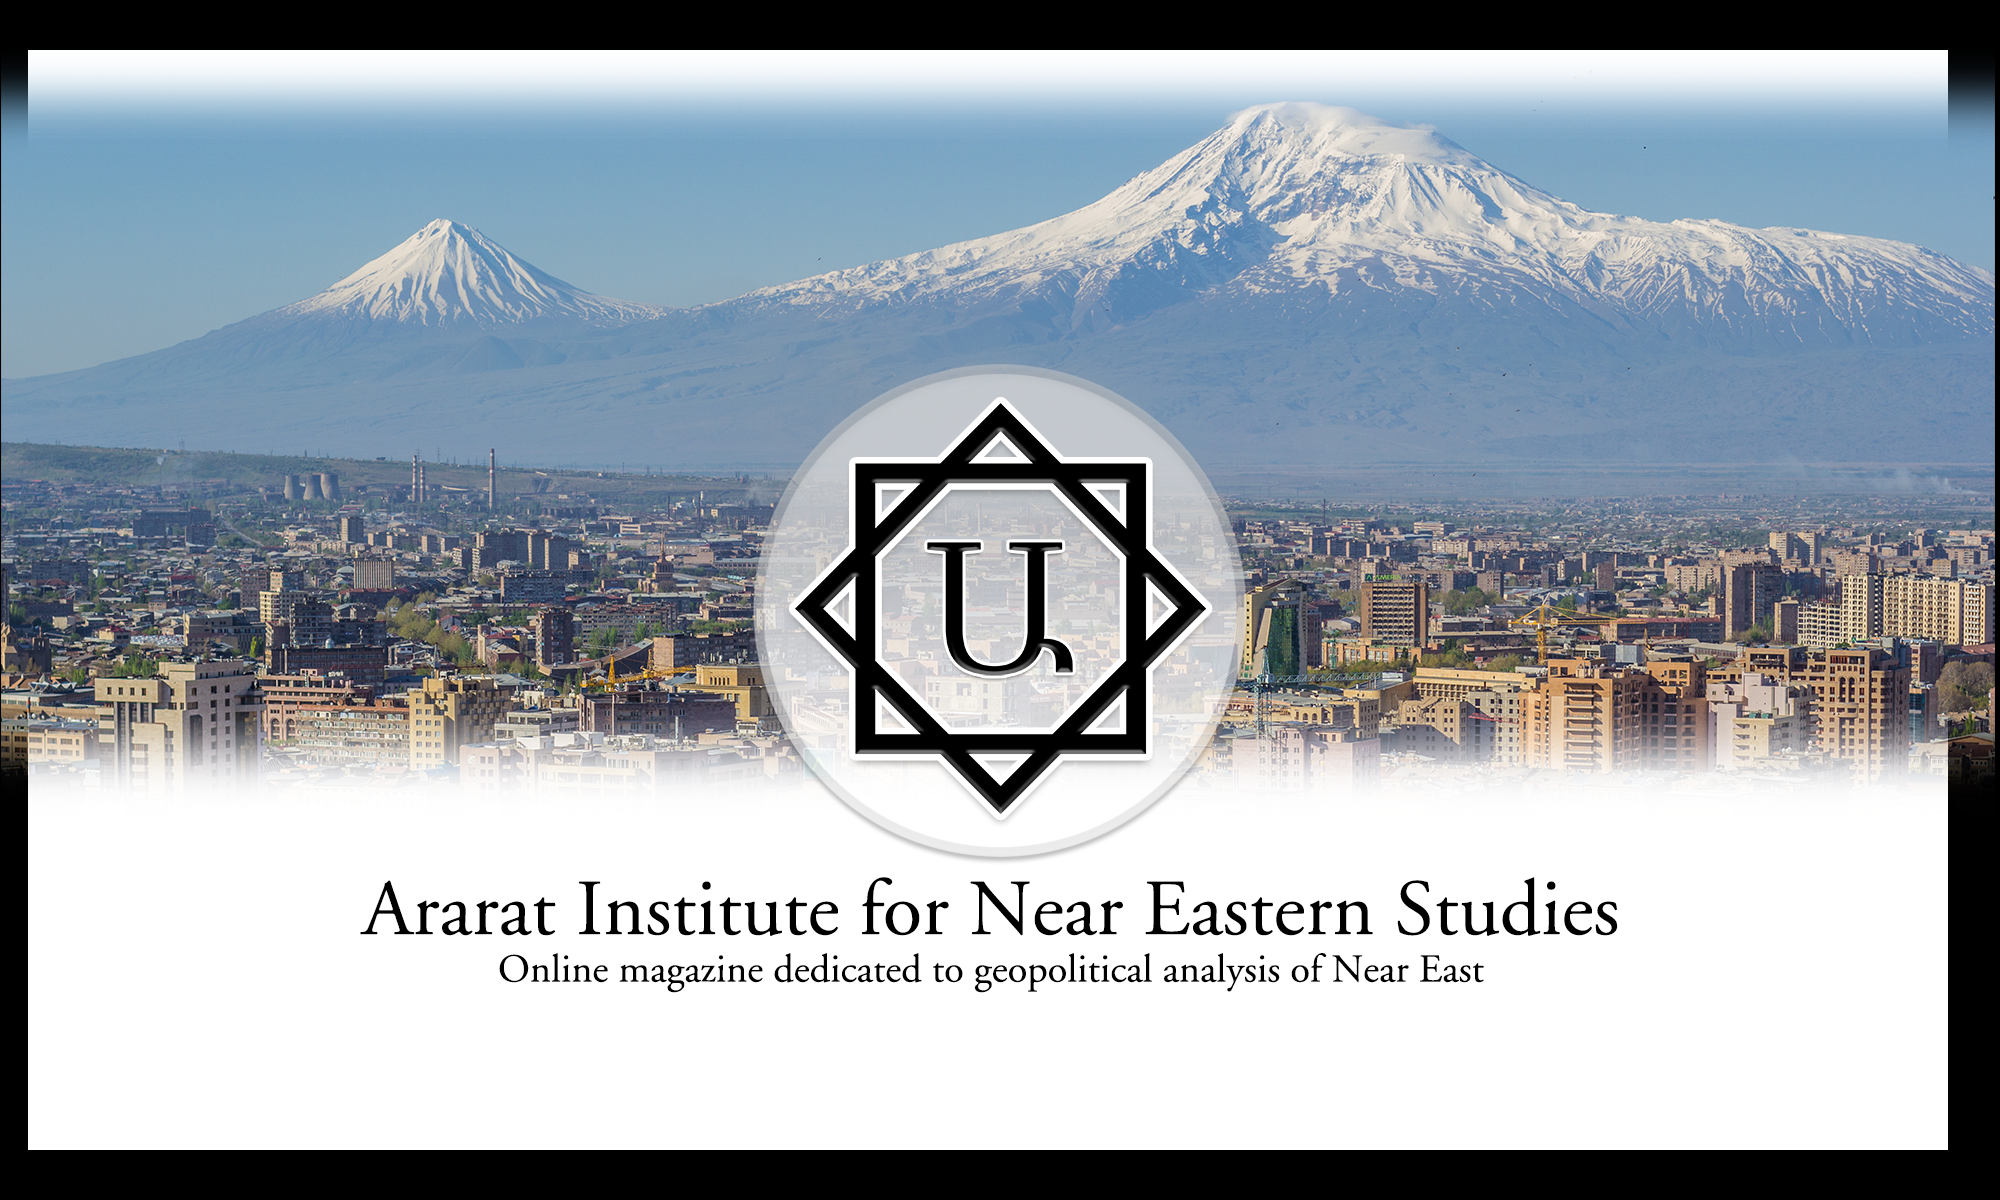 Ararat Institute for Near Eastern Studies